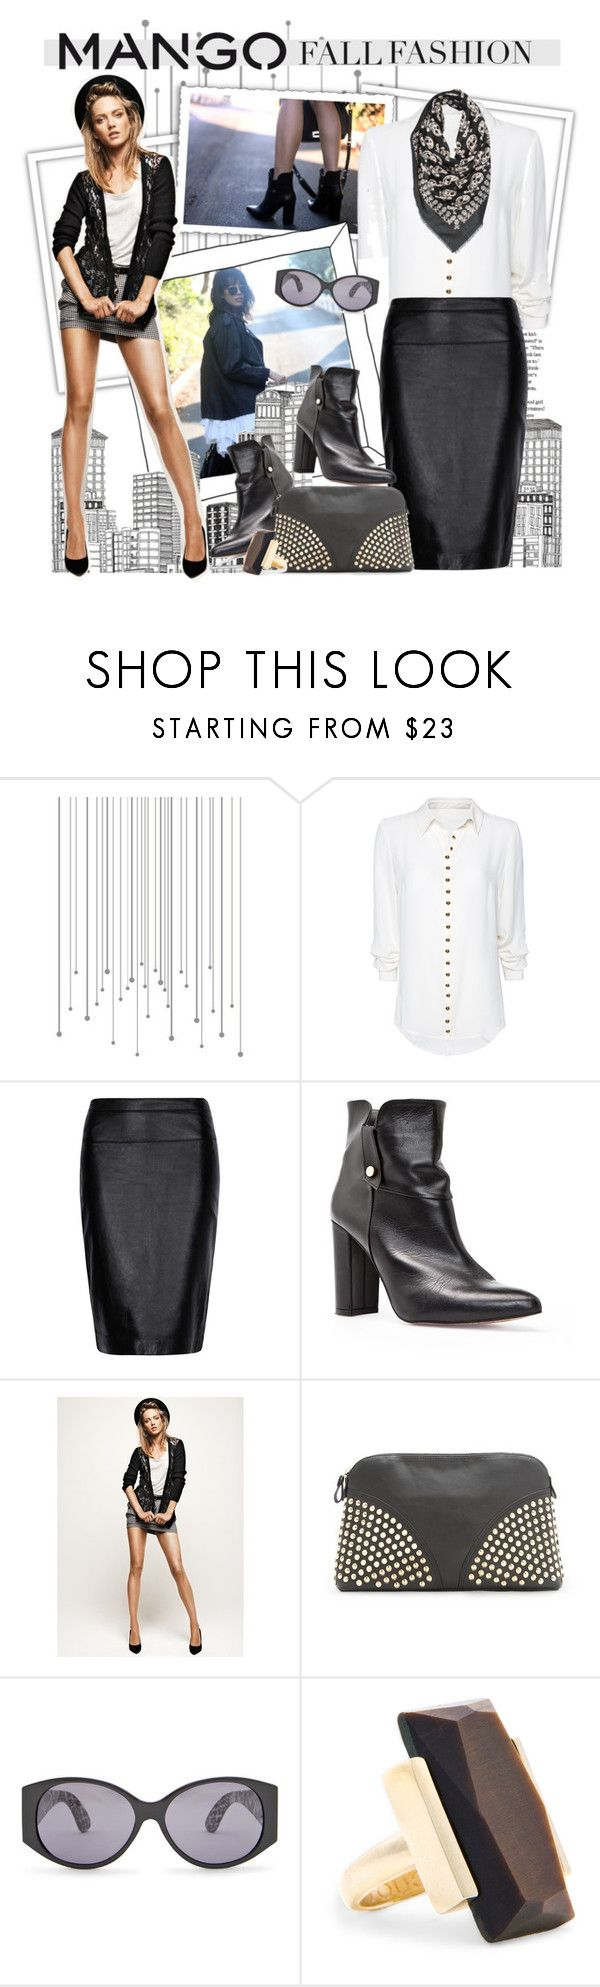 """""""Winter Aesthetic with Mango and That's Chic"""" by houseofhauteness ❤ liked on Polyvore featuring MANGO, skull scarf, mango and leather boots"""